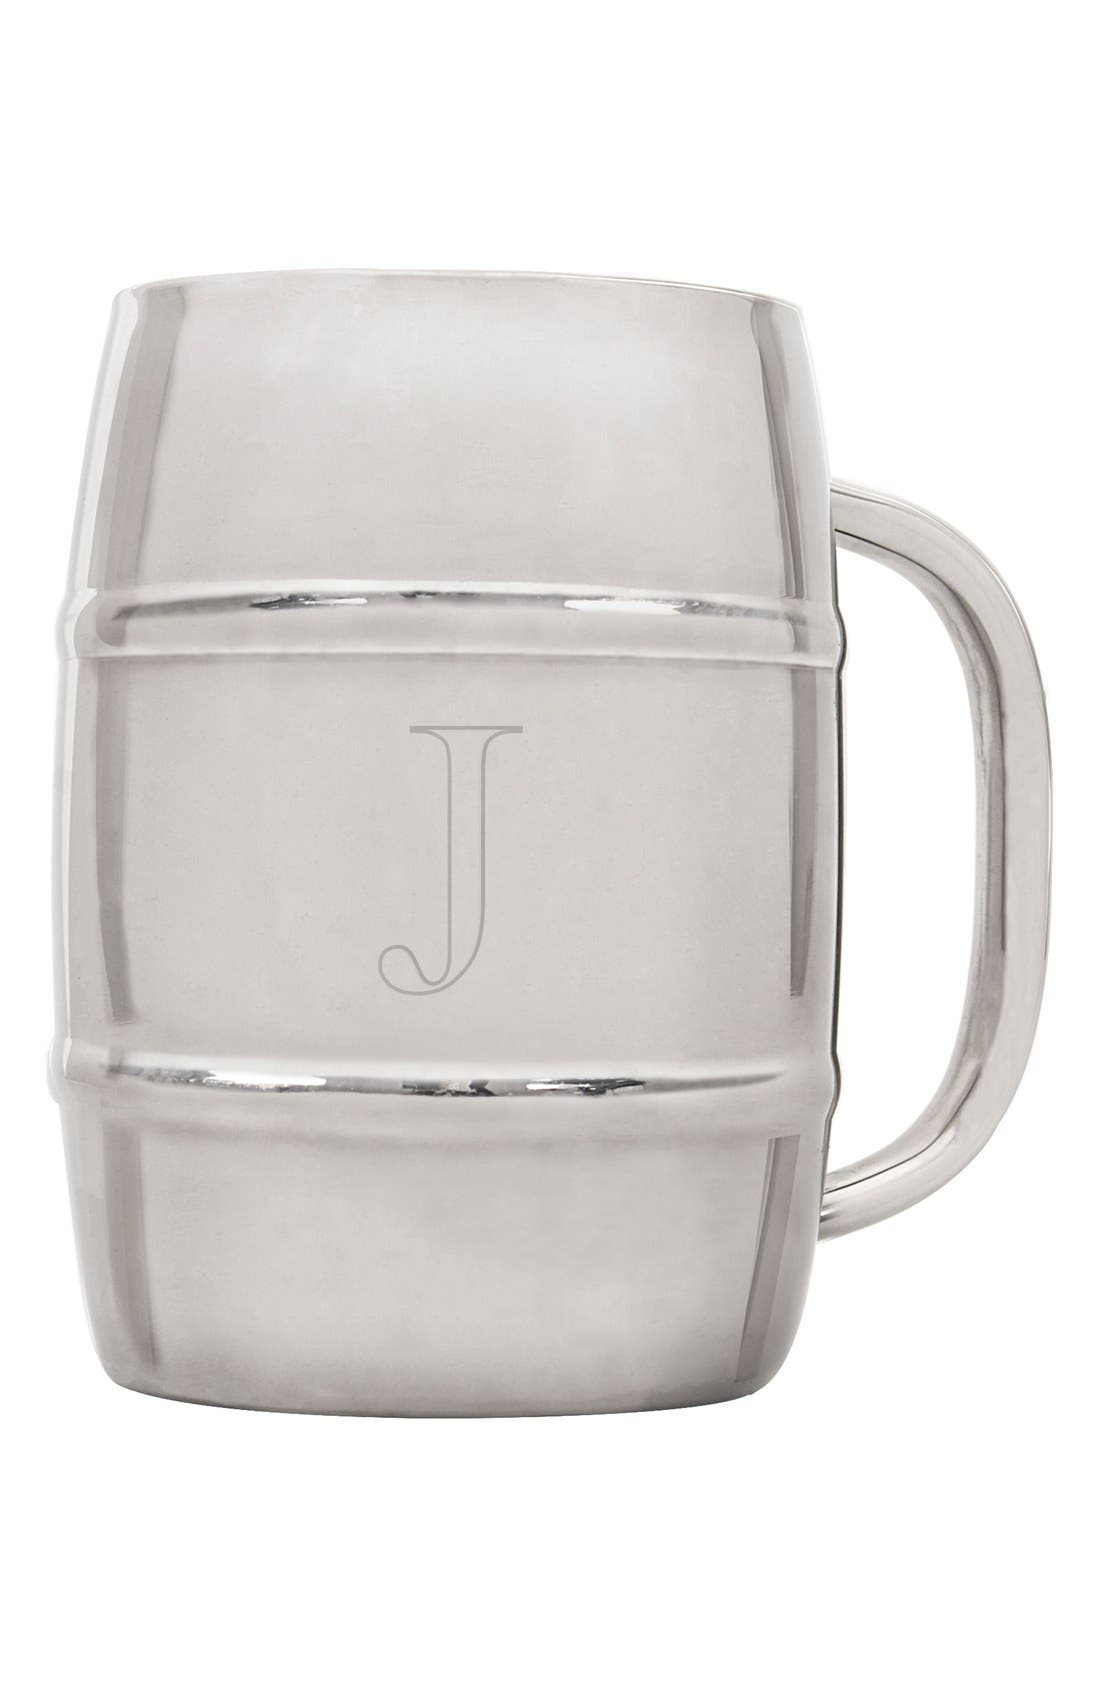 Cathy's Concepts 'XL Beer Keg' Monogram Mug